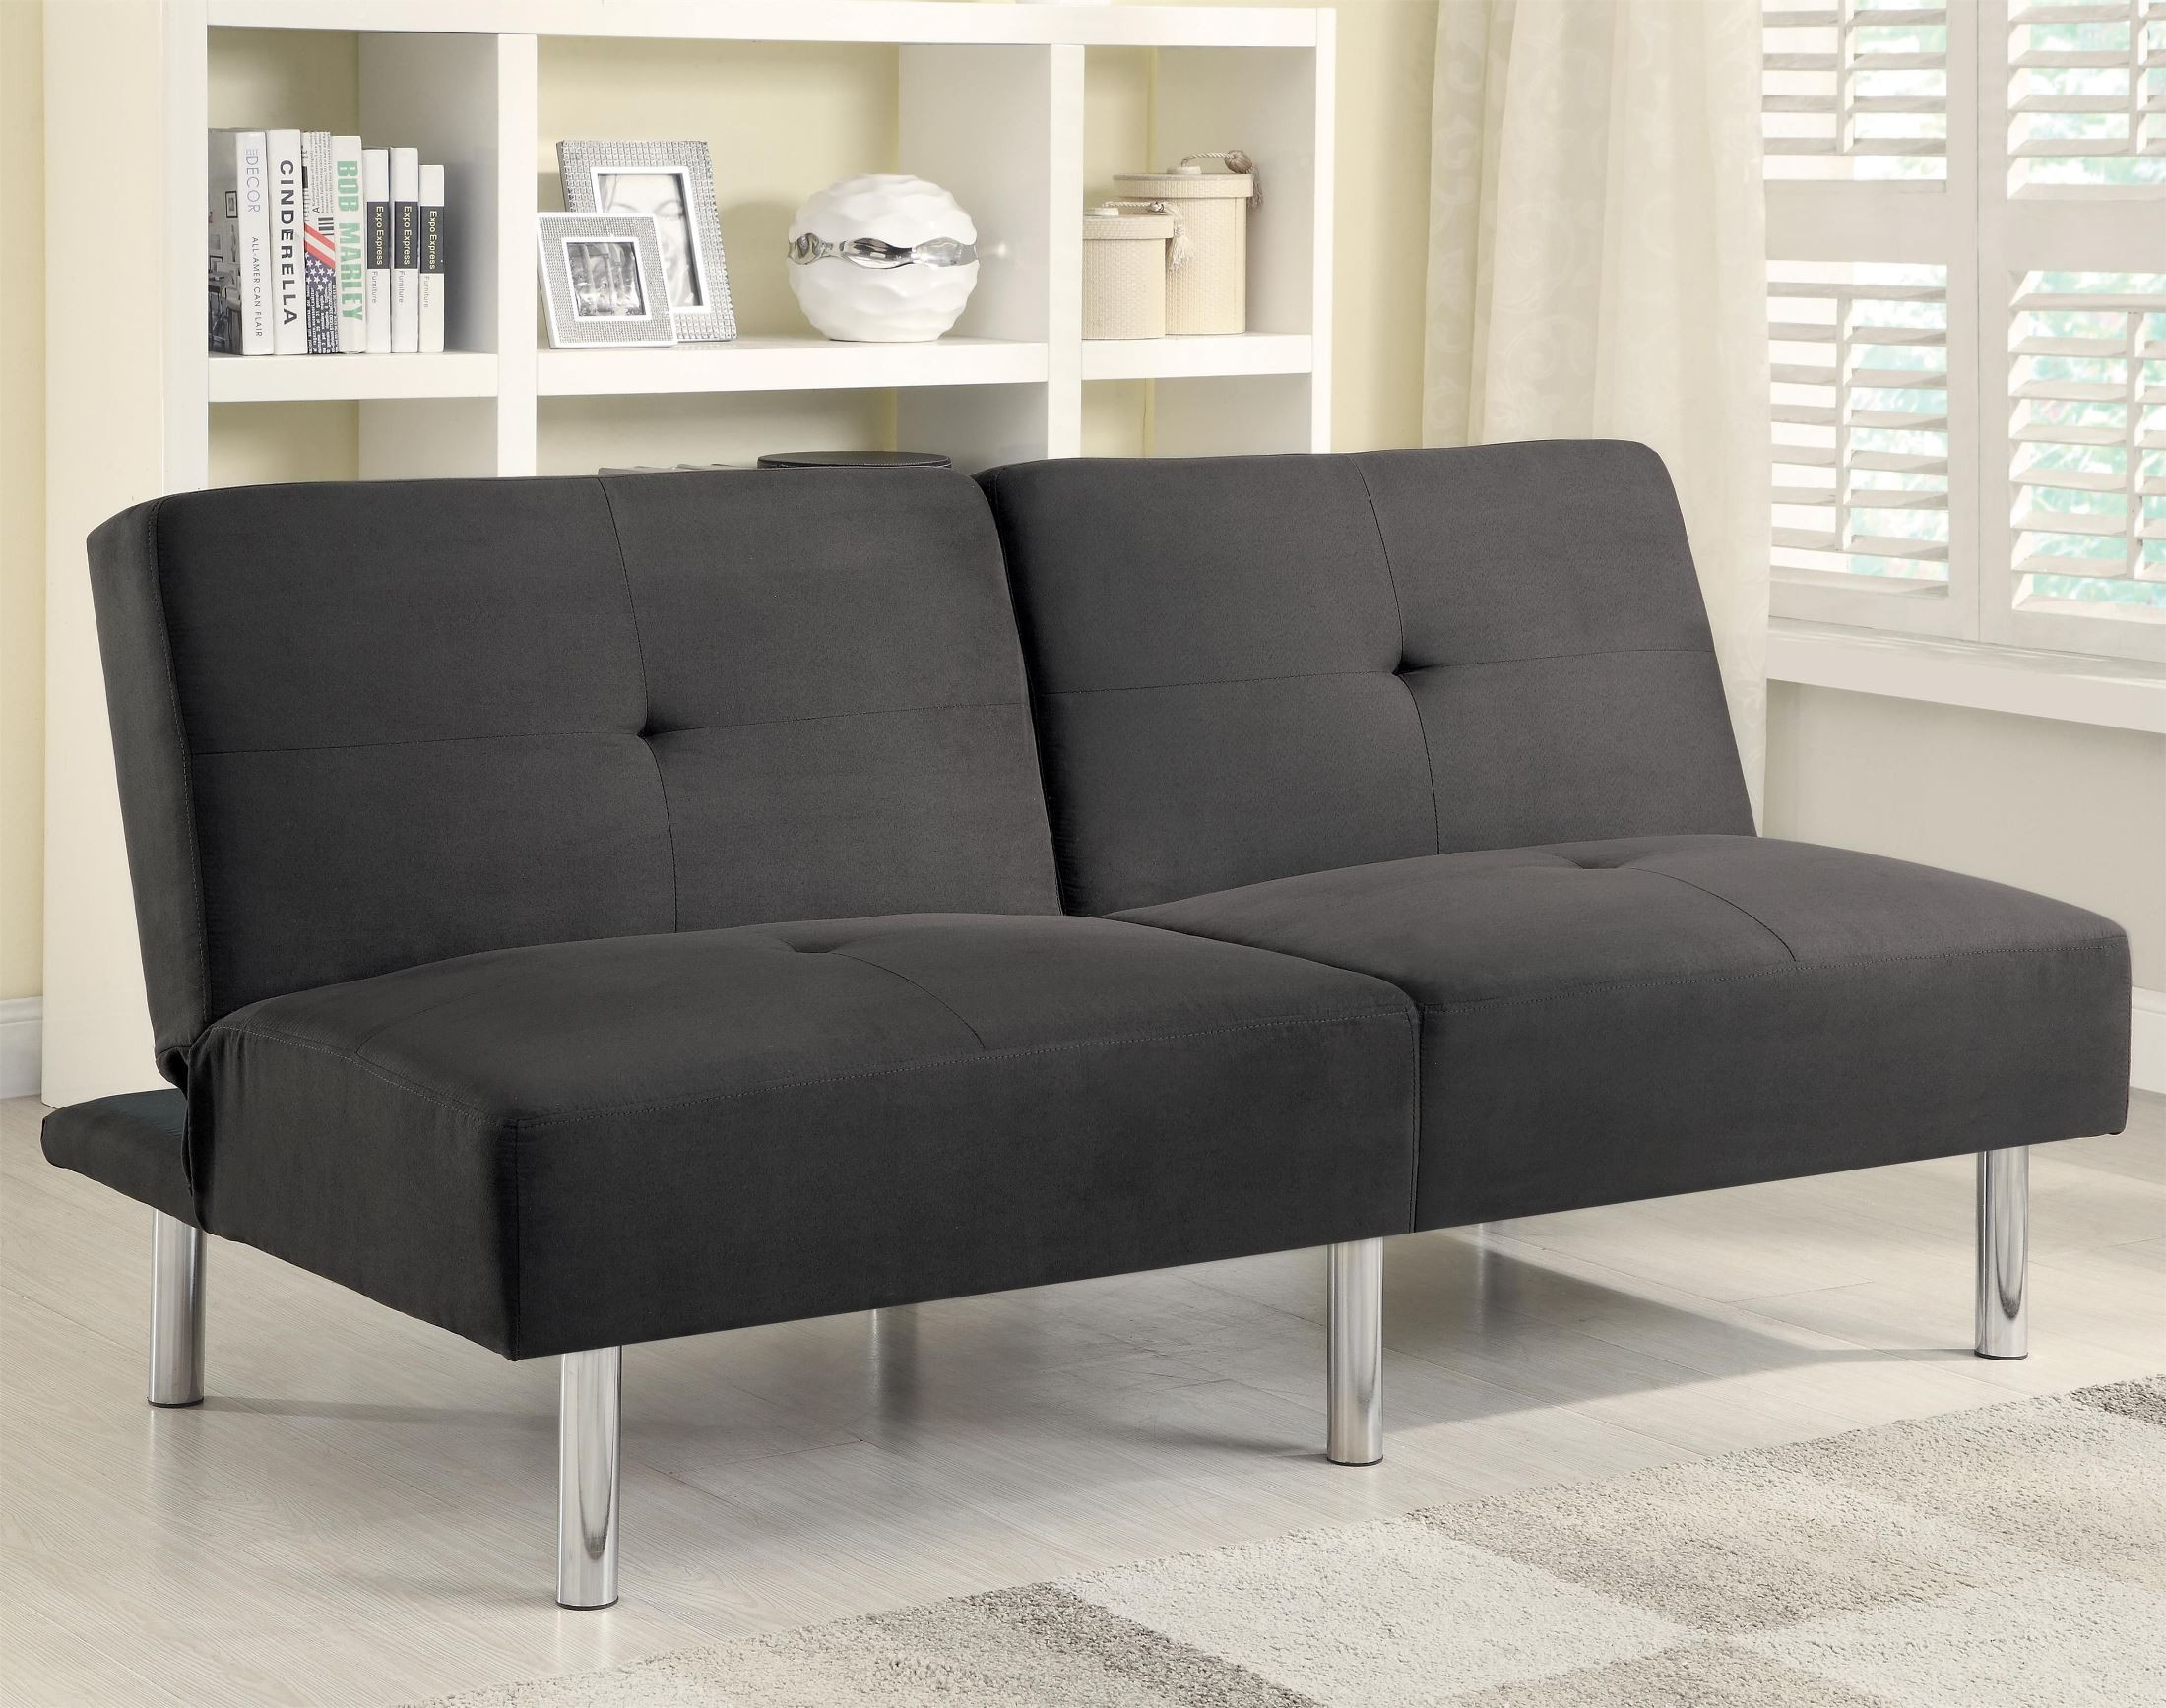 These 6 Pieces Of Colorful Furniture Are Absolute Must Haves: 300206 Charcoal Microfiber Split Back Sofa Bed From